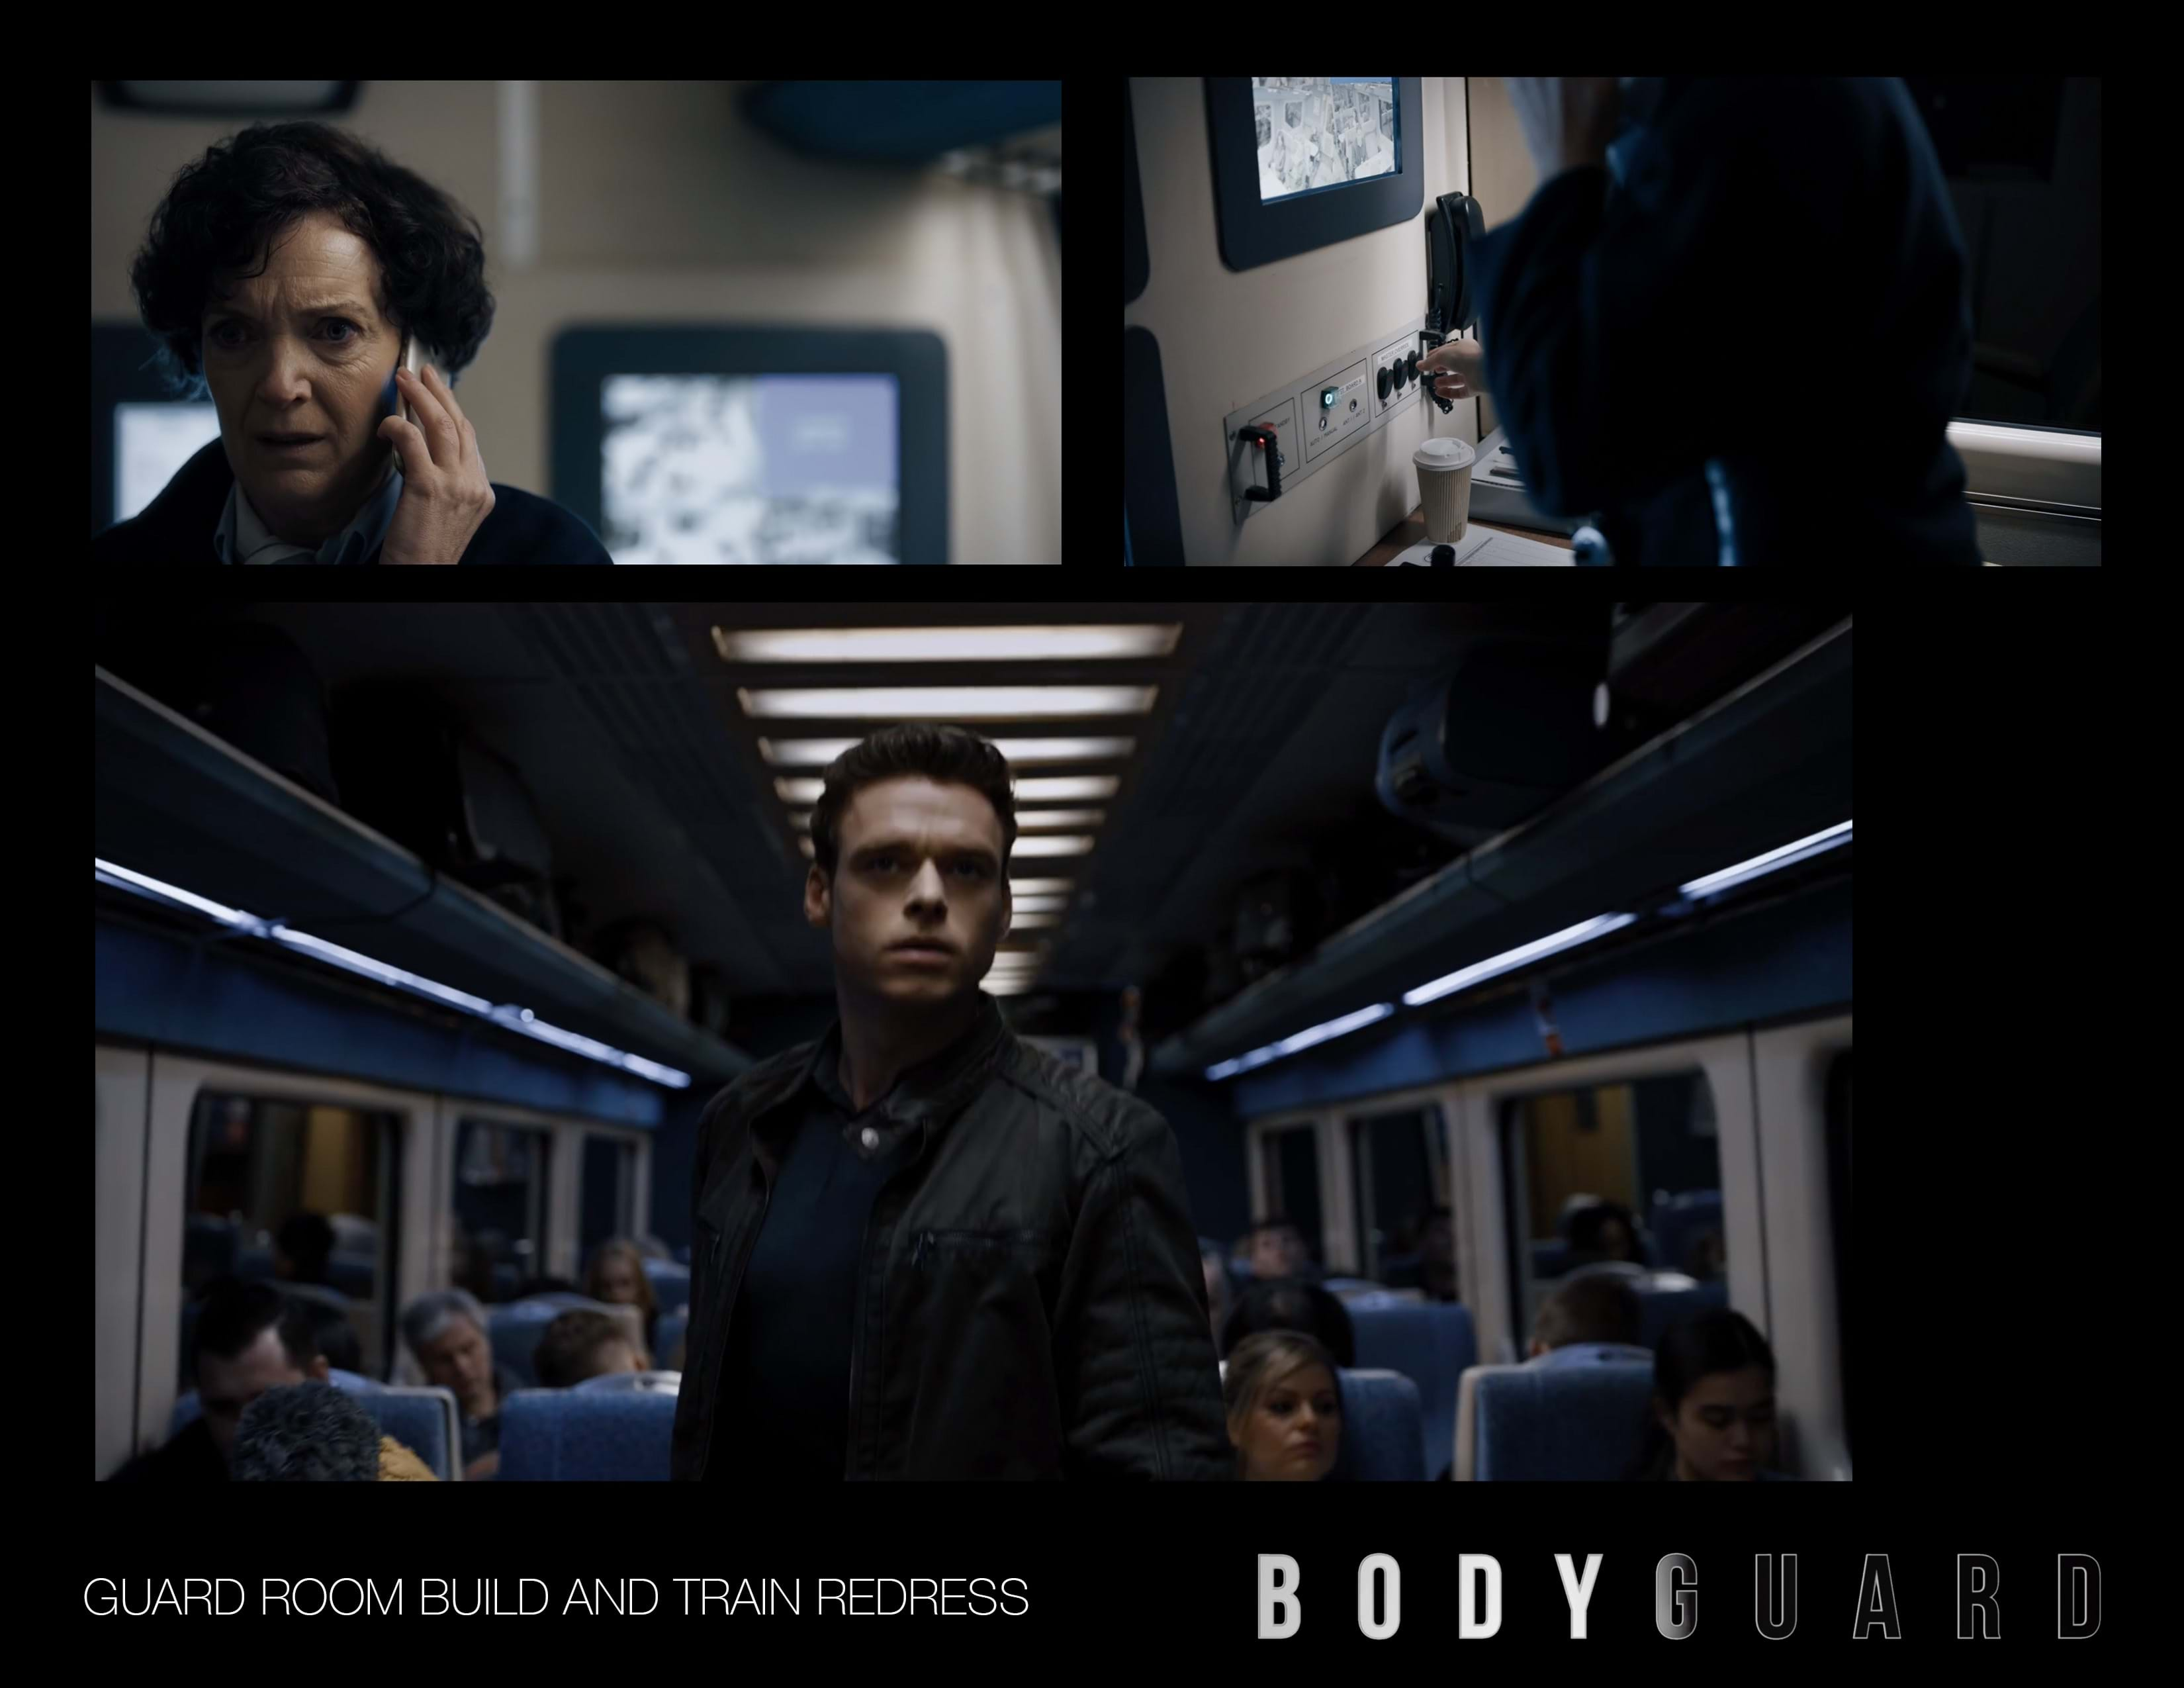 A collection of photos from the TV show Bodyguard